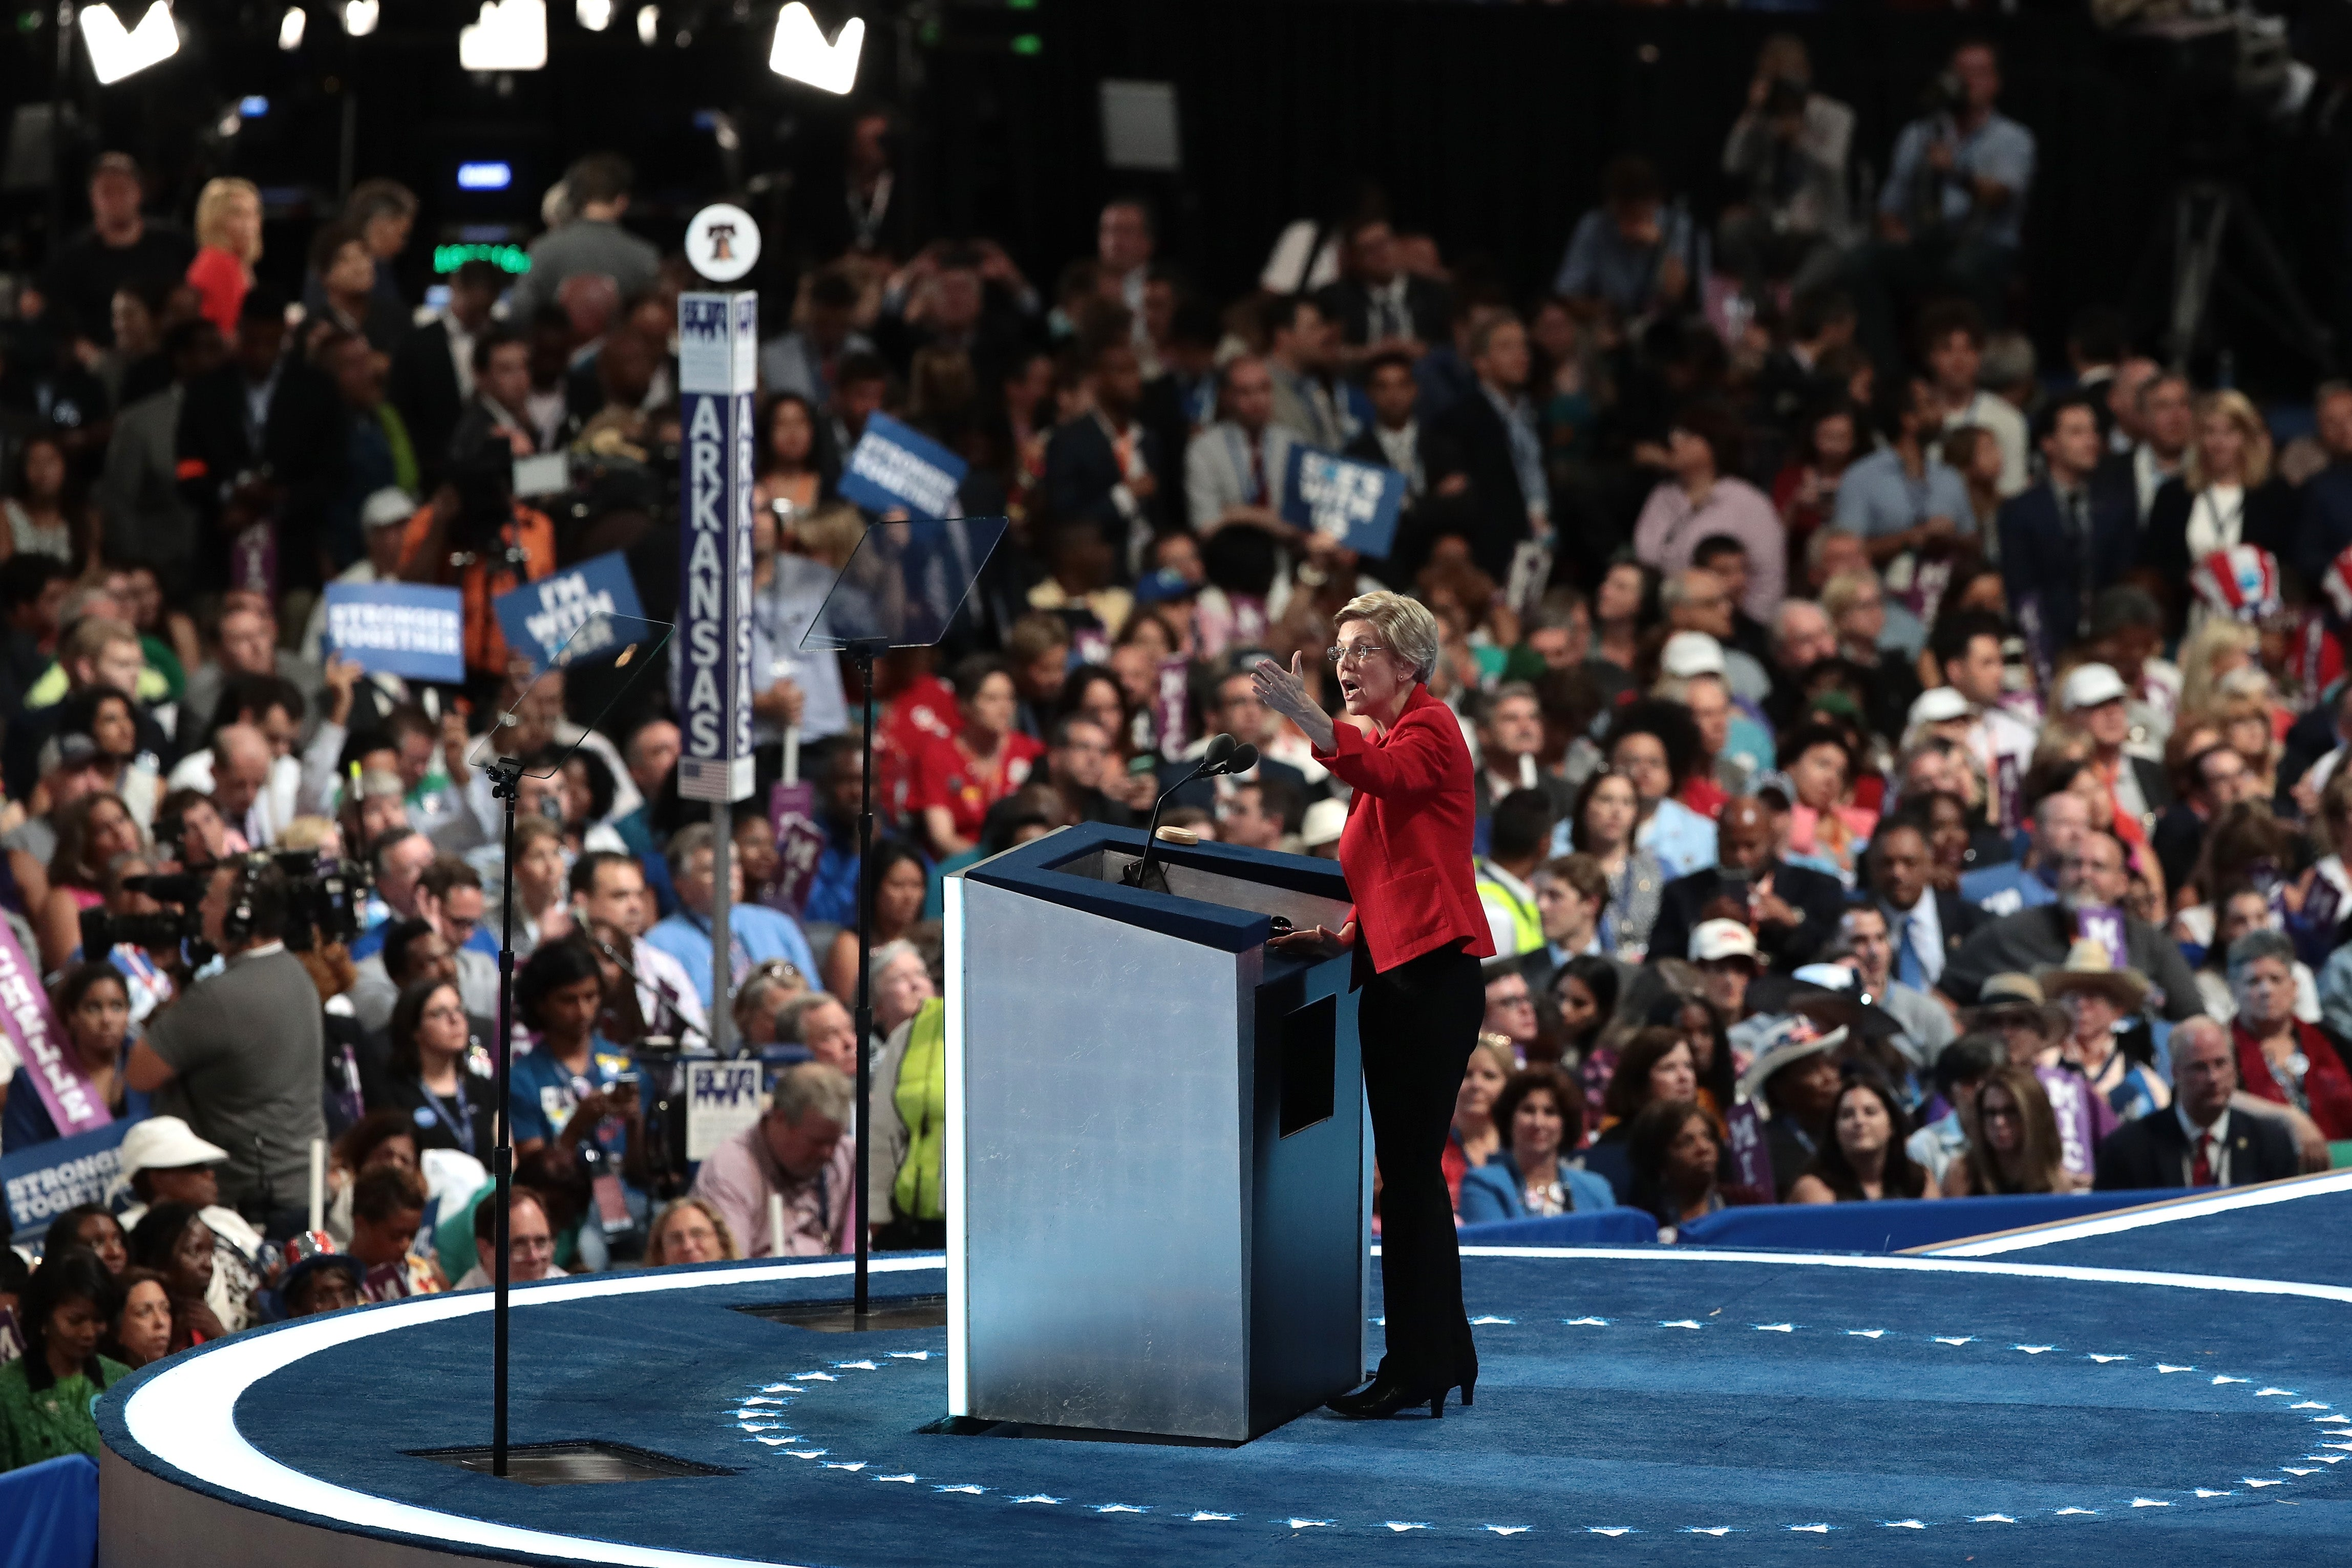 PHILADELPHIA, PA - JULY 25:  Sen. Elizabeth Warren (D-MA) delivers remarks on the first day of the Democratic National Convention at the Wells Fargo Center, July 25, 2016 in Philadelphia, Pennsylvania. An estimated 50,000 people are expected in Philadelphia, including hundreds of protesters and members of the media. The four-day Democratic National Convention kicked off July 25.  (Photo by Drew Angerer/Getty Images)